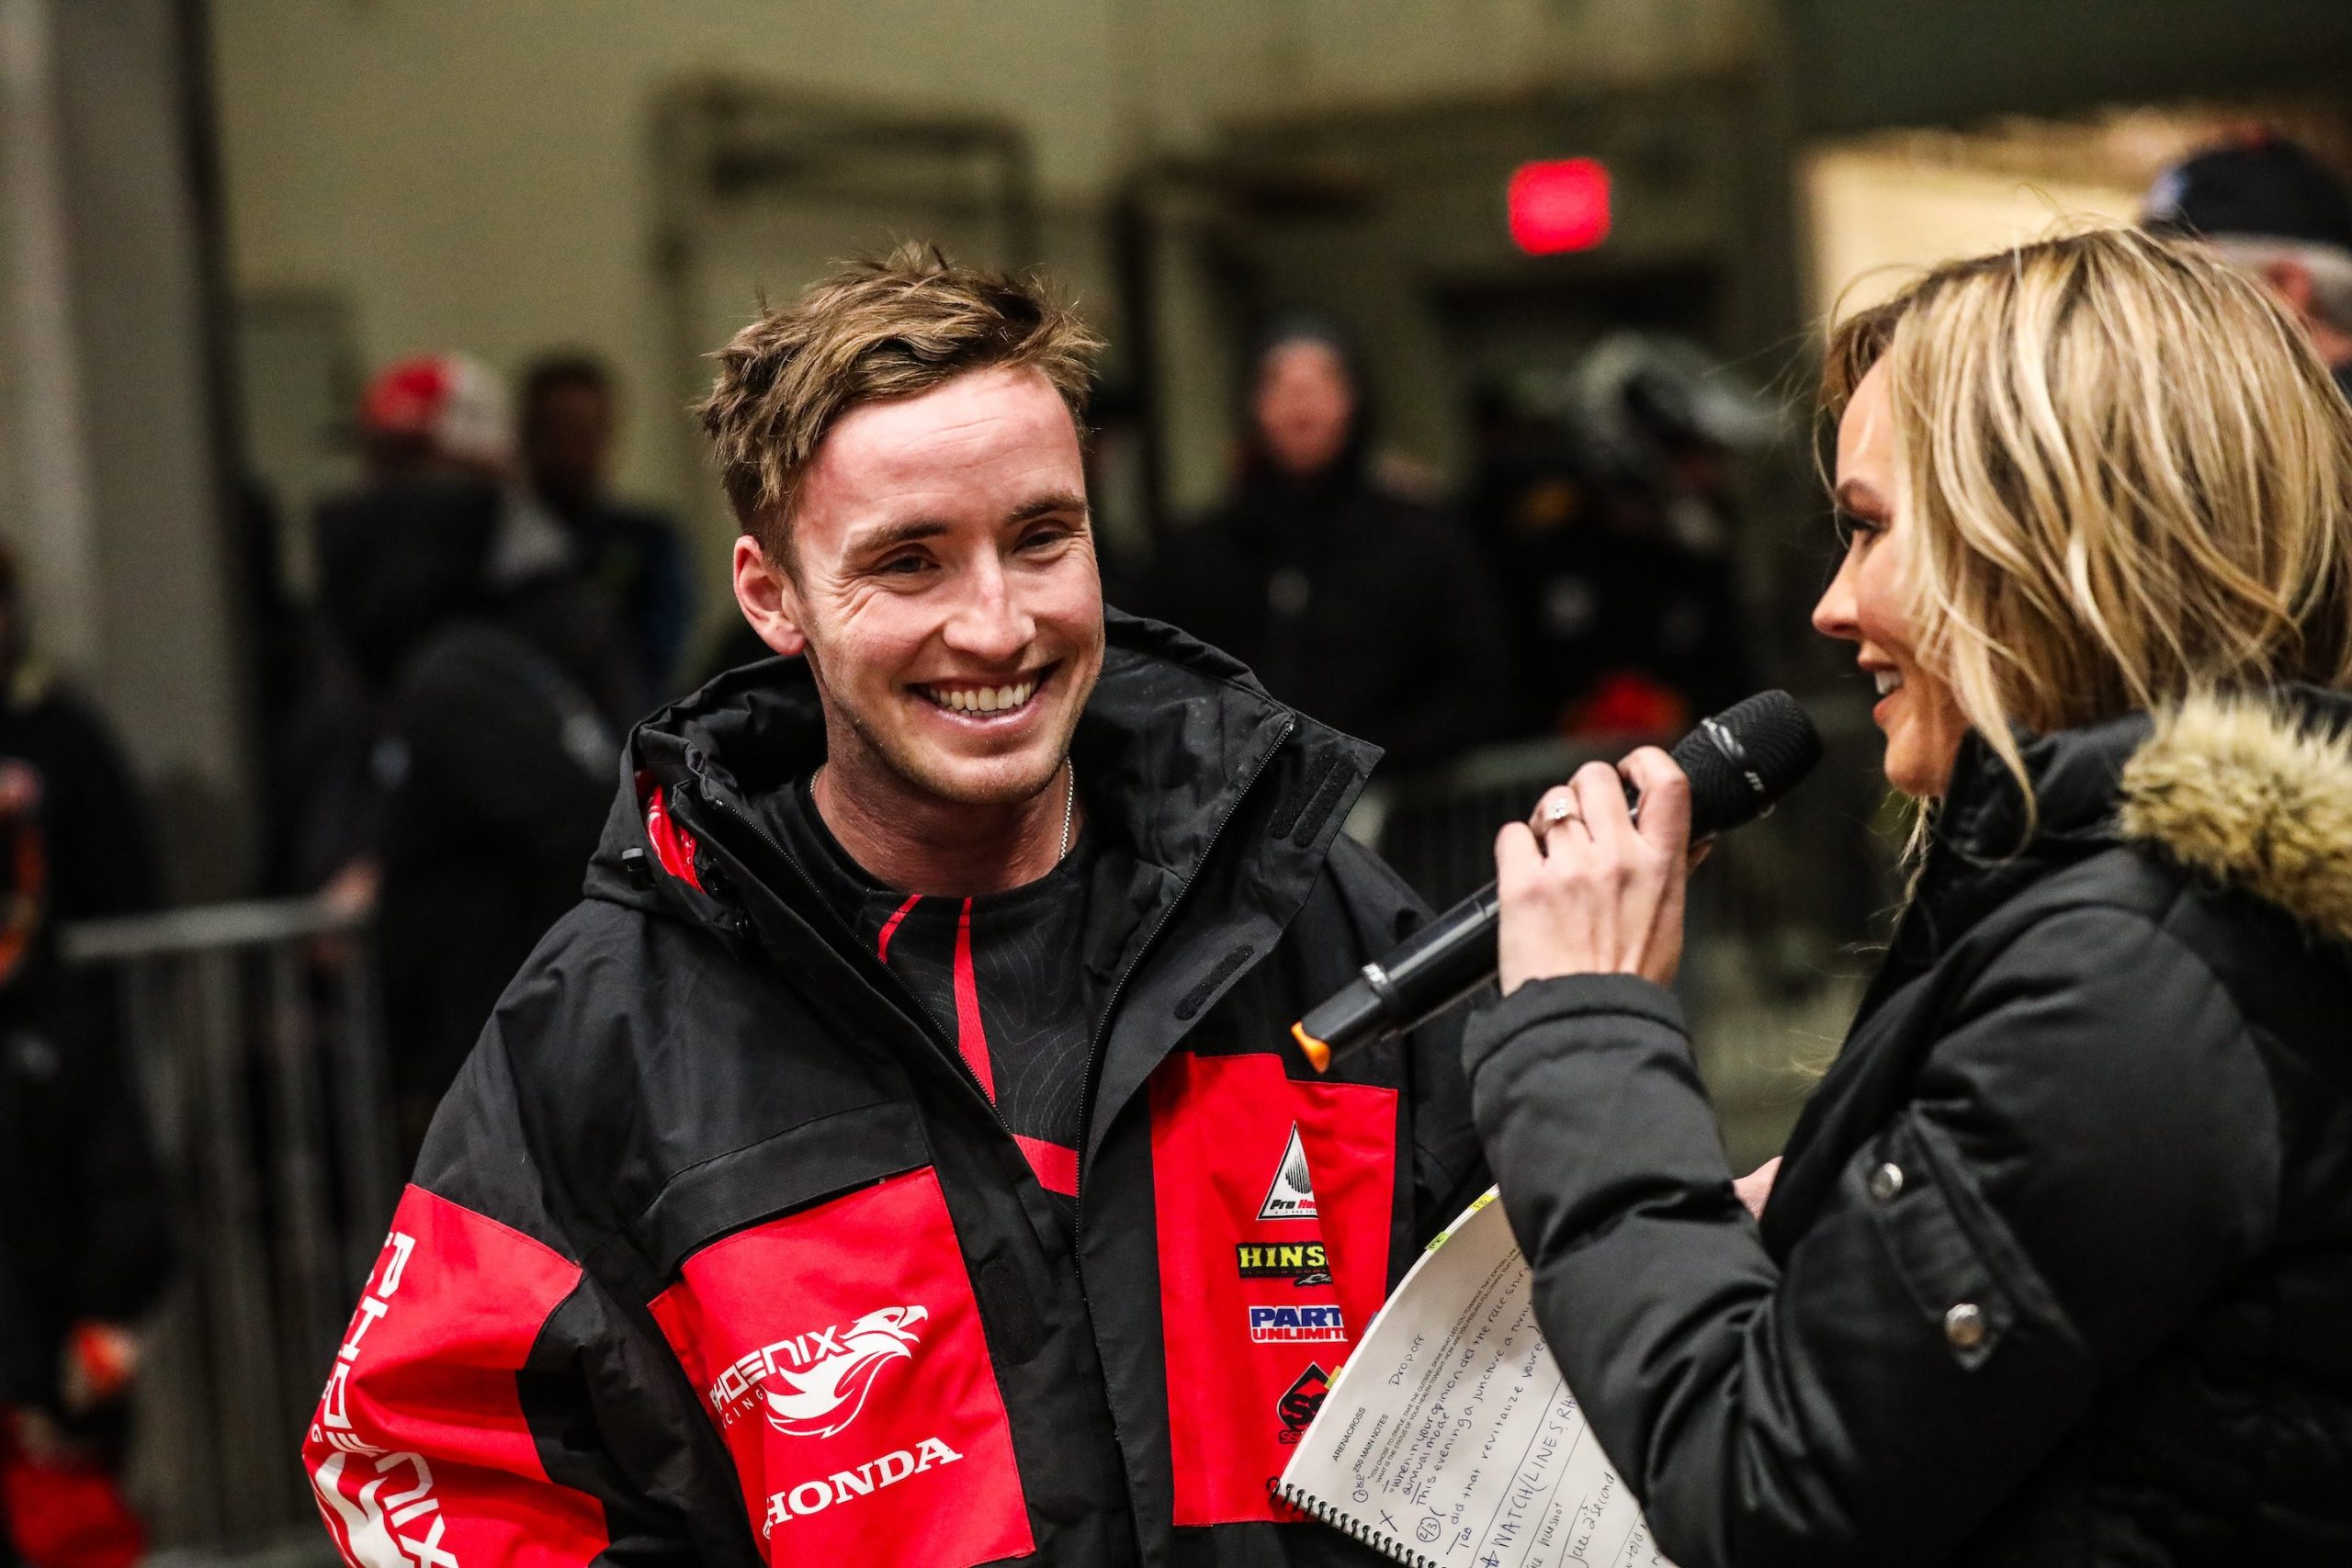 Kyle Peters (left) is all smiles after his win in 450 Pro Sport main as he talks with Fox Sport's Kristen Beat (right). (Photo- Jack Jaxson)